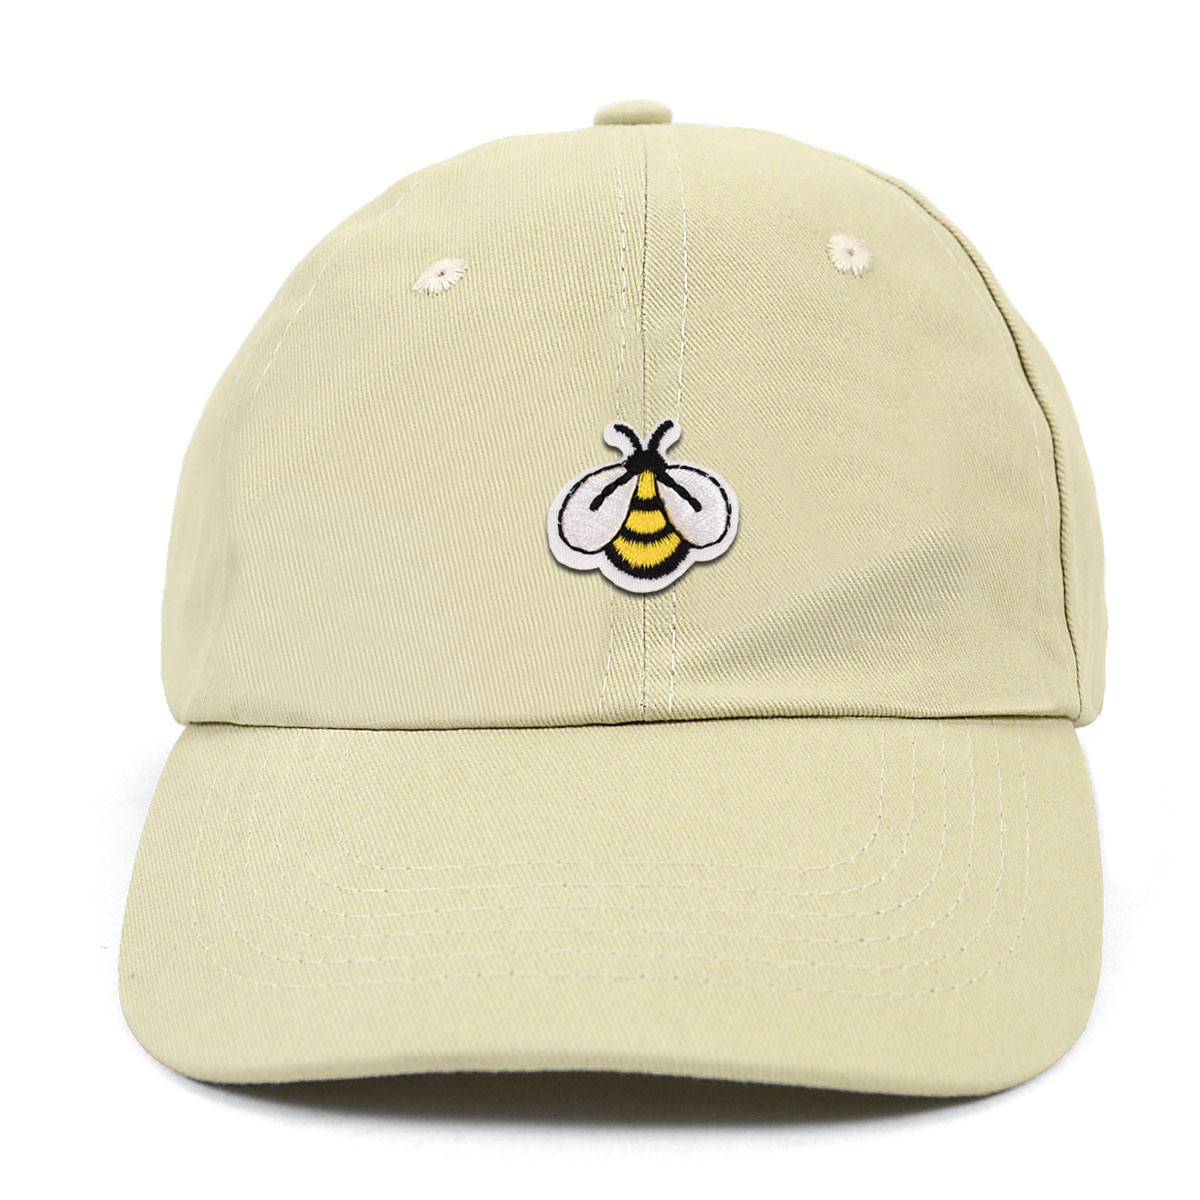 Patched Traditional Cotton Twill Baseball Cap - COCAP4P